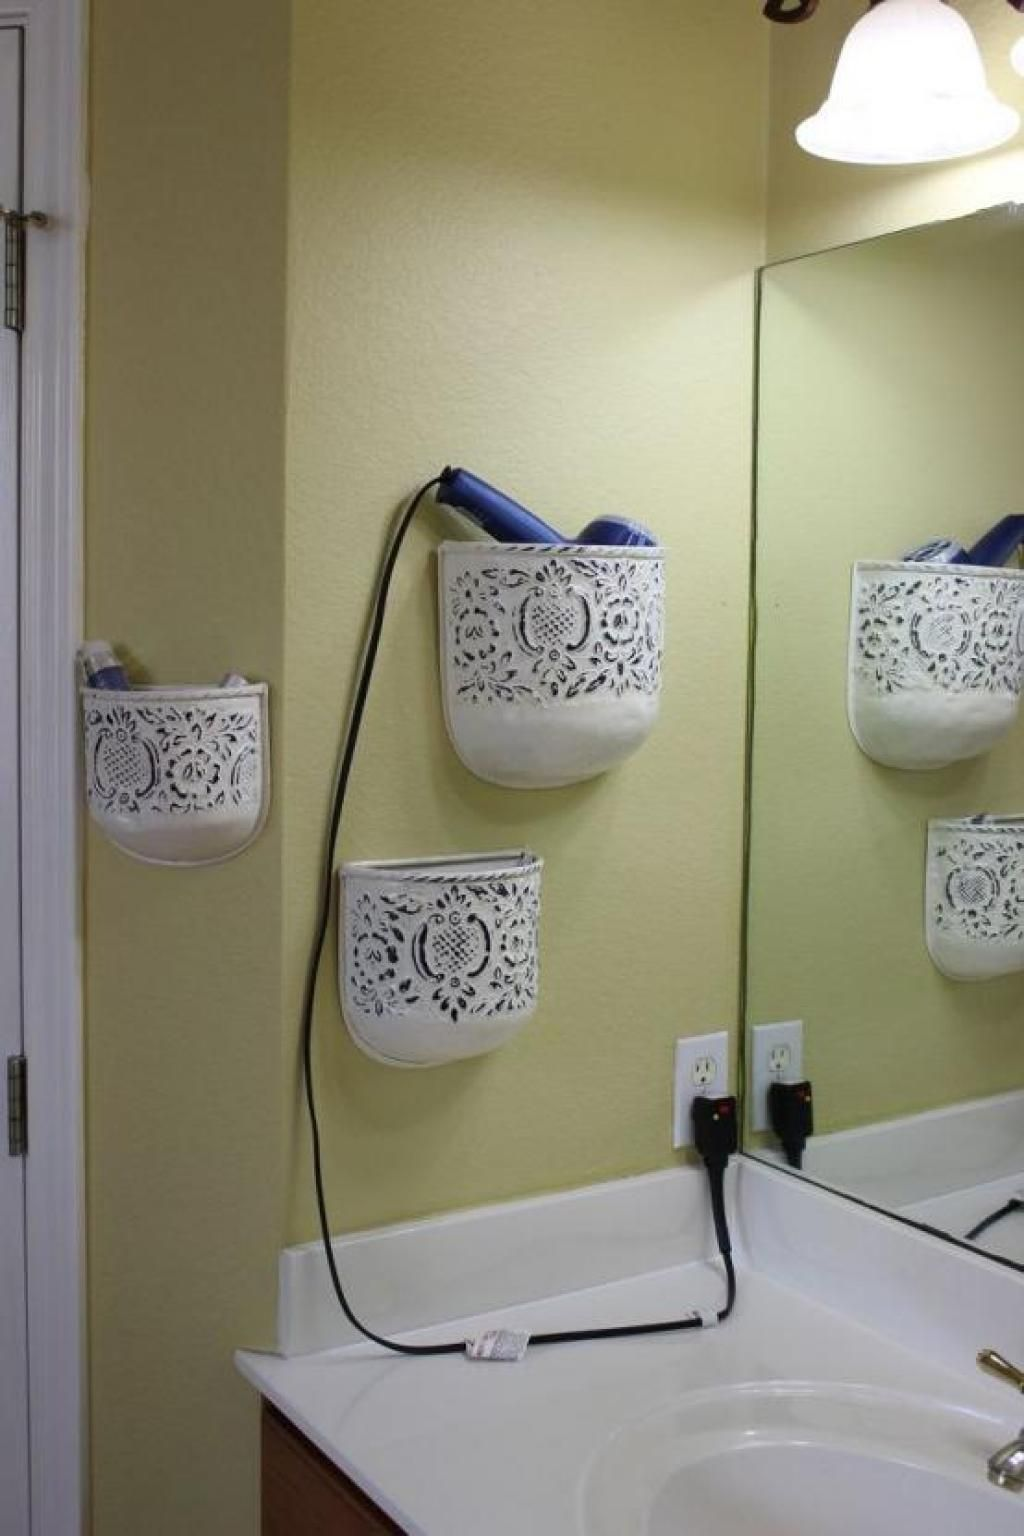 Superieur Practical Bathroom Storage Ideas Hair Dryer Storage And Bathroom Tools With  White Hanging Lighting Genius And Easy Applied Bathroom Shelving Ideas  Bathroom ...